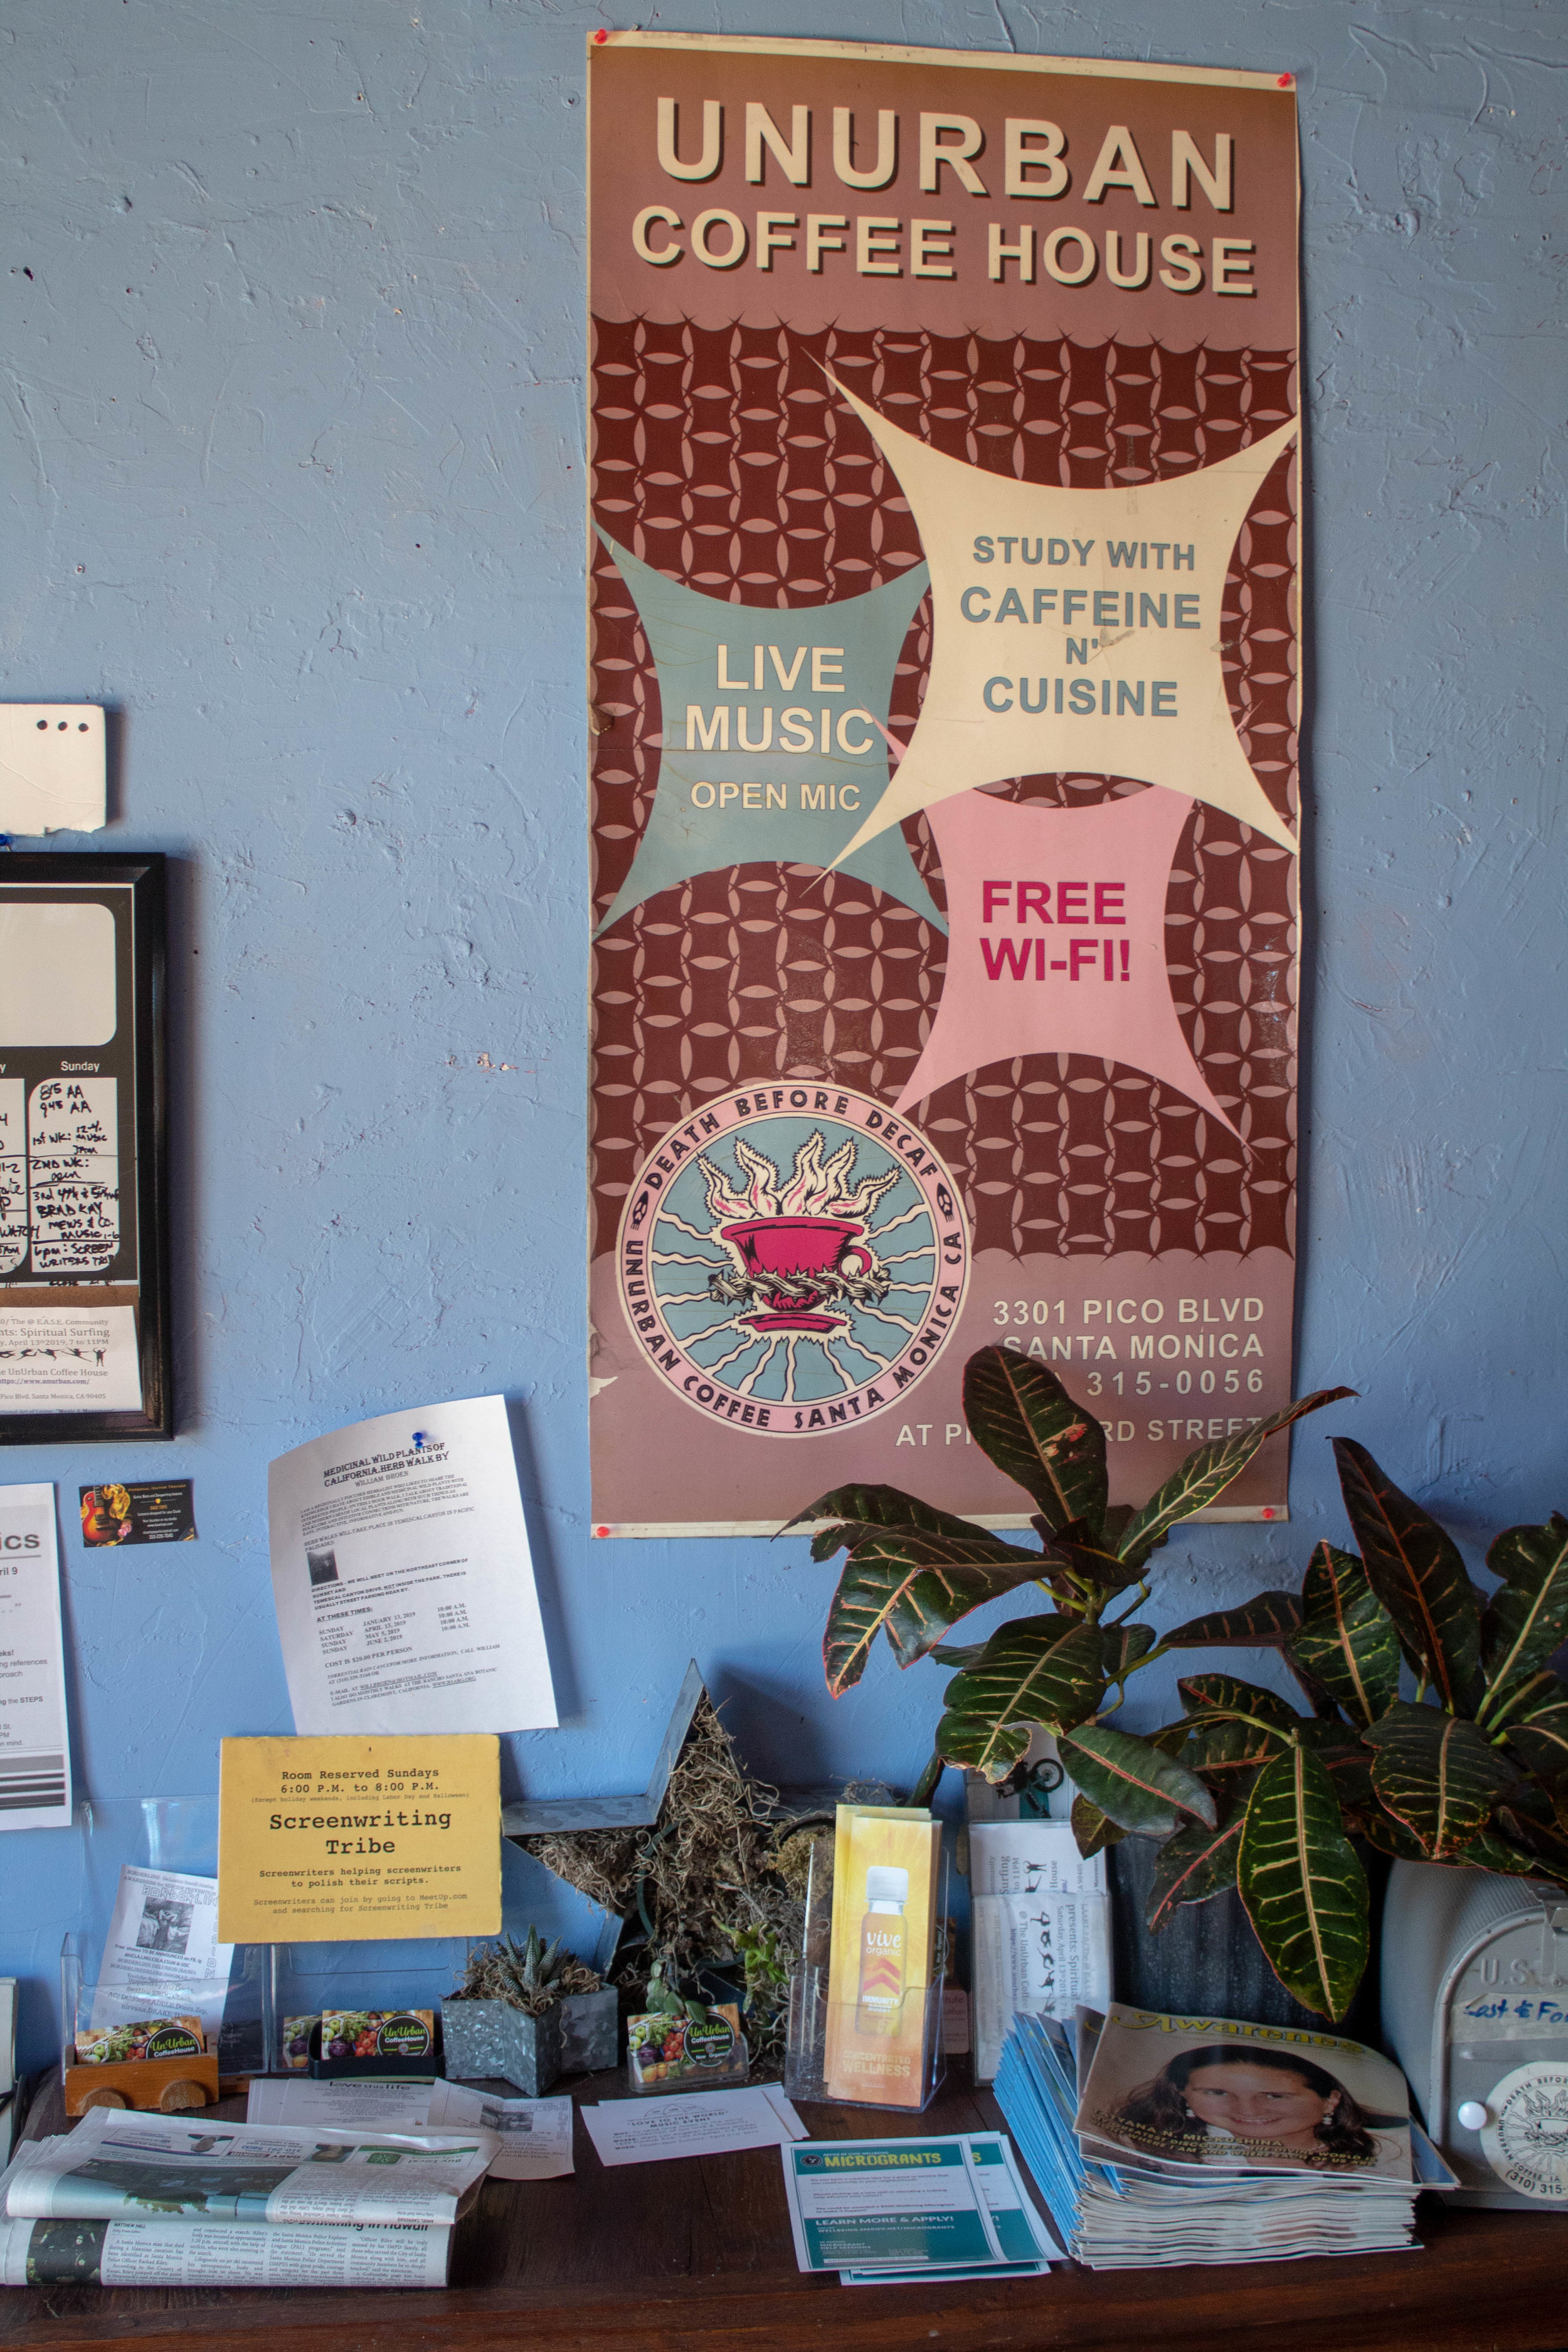 Posters adorn the walls of UnUrban Coffee House for a myriad of community events and causes, giving the vibe of a true community space. April 18, 2019 in Santa Monica, California. Danica Creahan / The Corsair